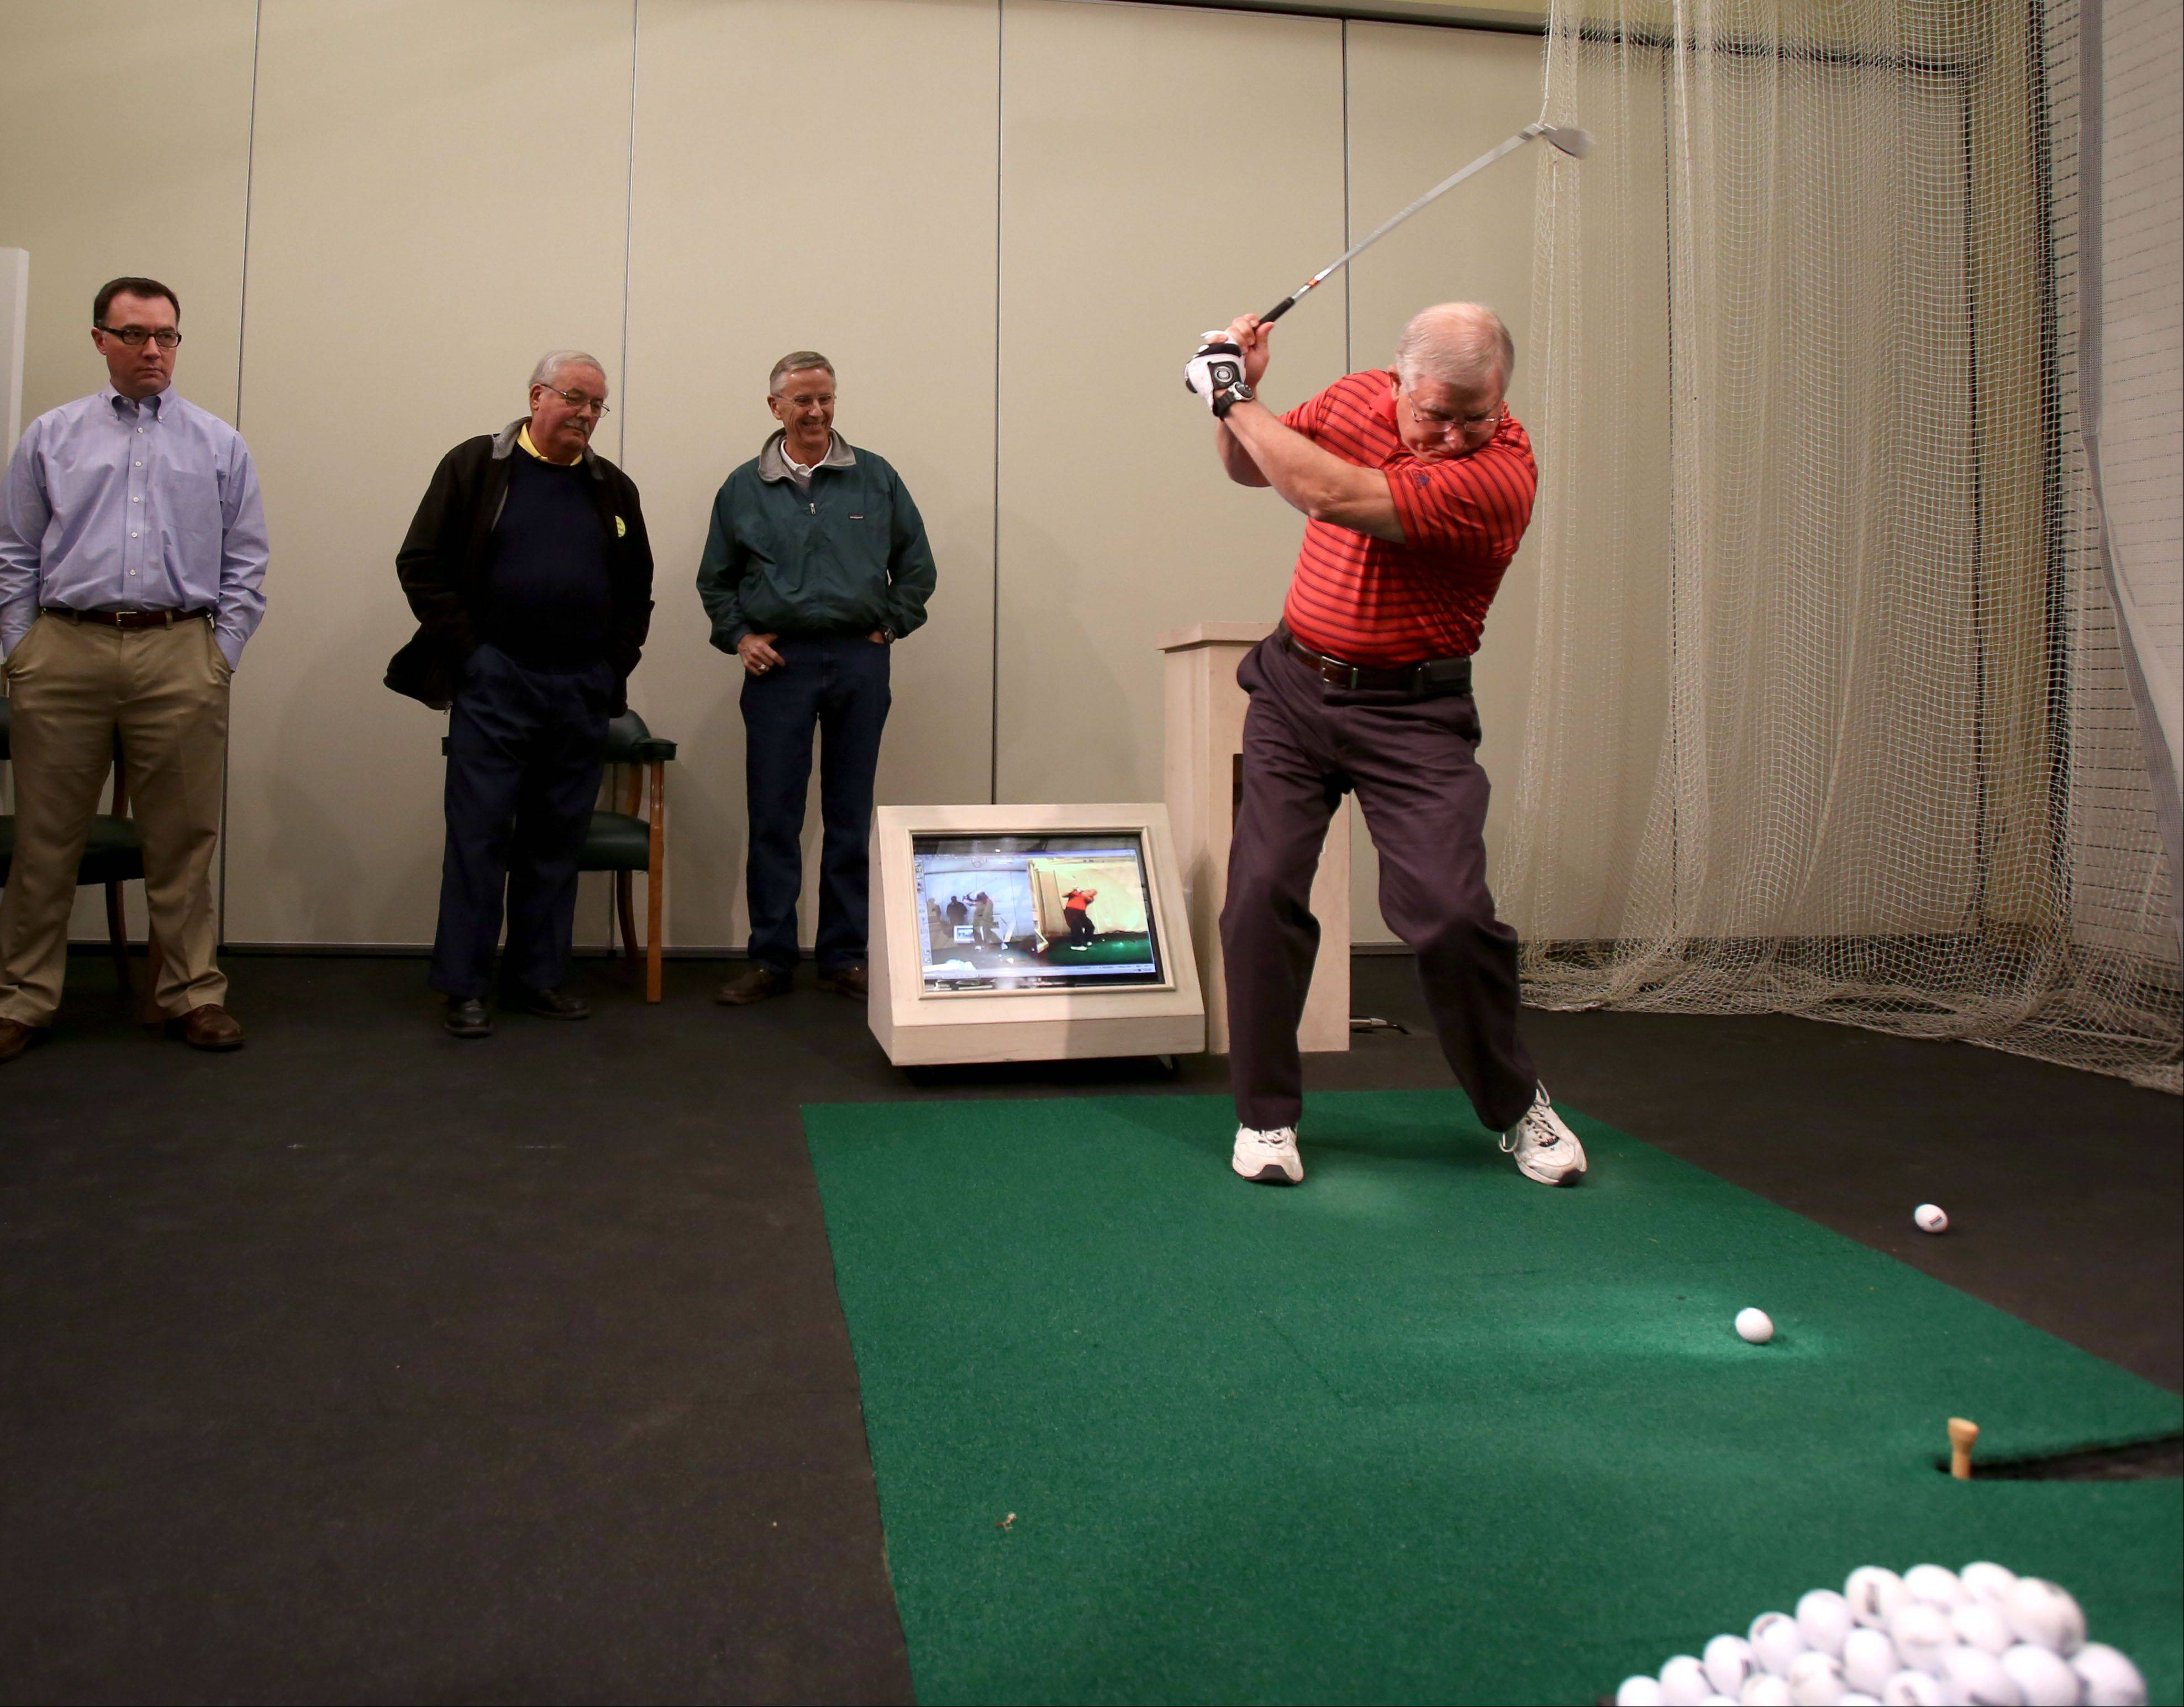 Gregory Collins of Antioch tries out his golf swing during the Daily Herald Subscriber Total Access event Monday at the Cantigny Golf Academy at Cantigny Park in Wheaton. Collins and other guests were able to try out their golf swings in the swing analysis room at the academy.